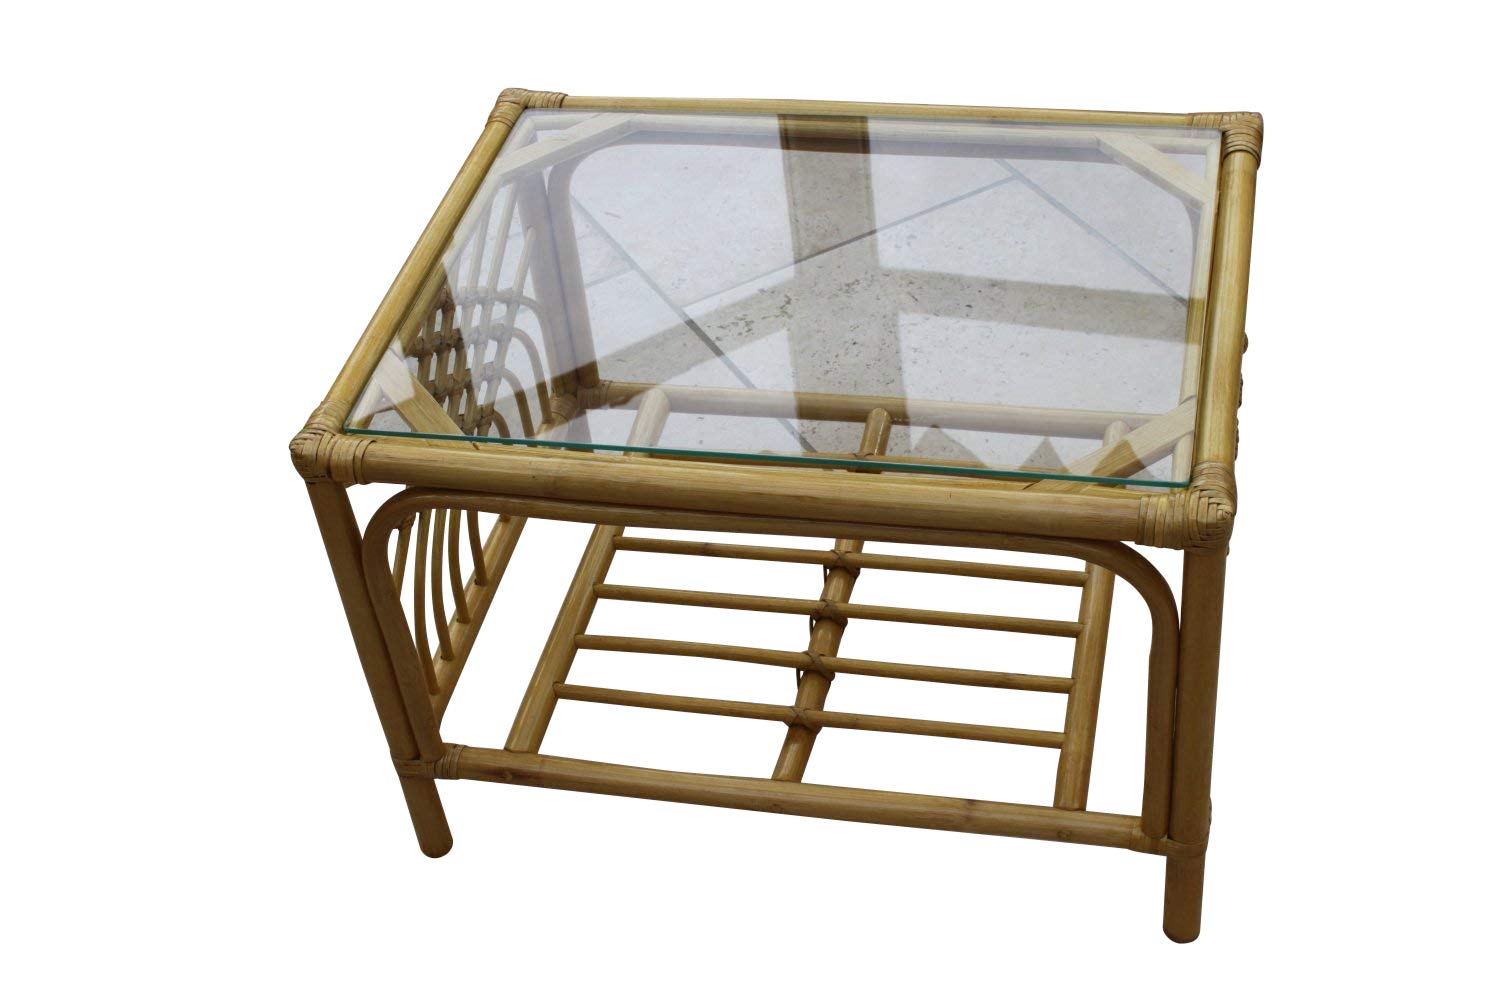 Garden Market Place Portofino Cane Coffee Table in a Natural Finish-Tempered Glass 66 X51 X 46